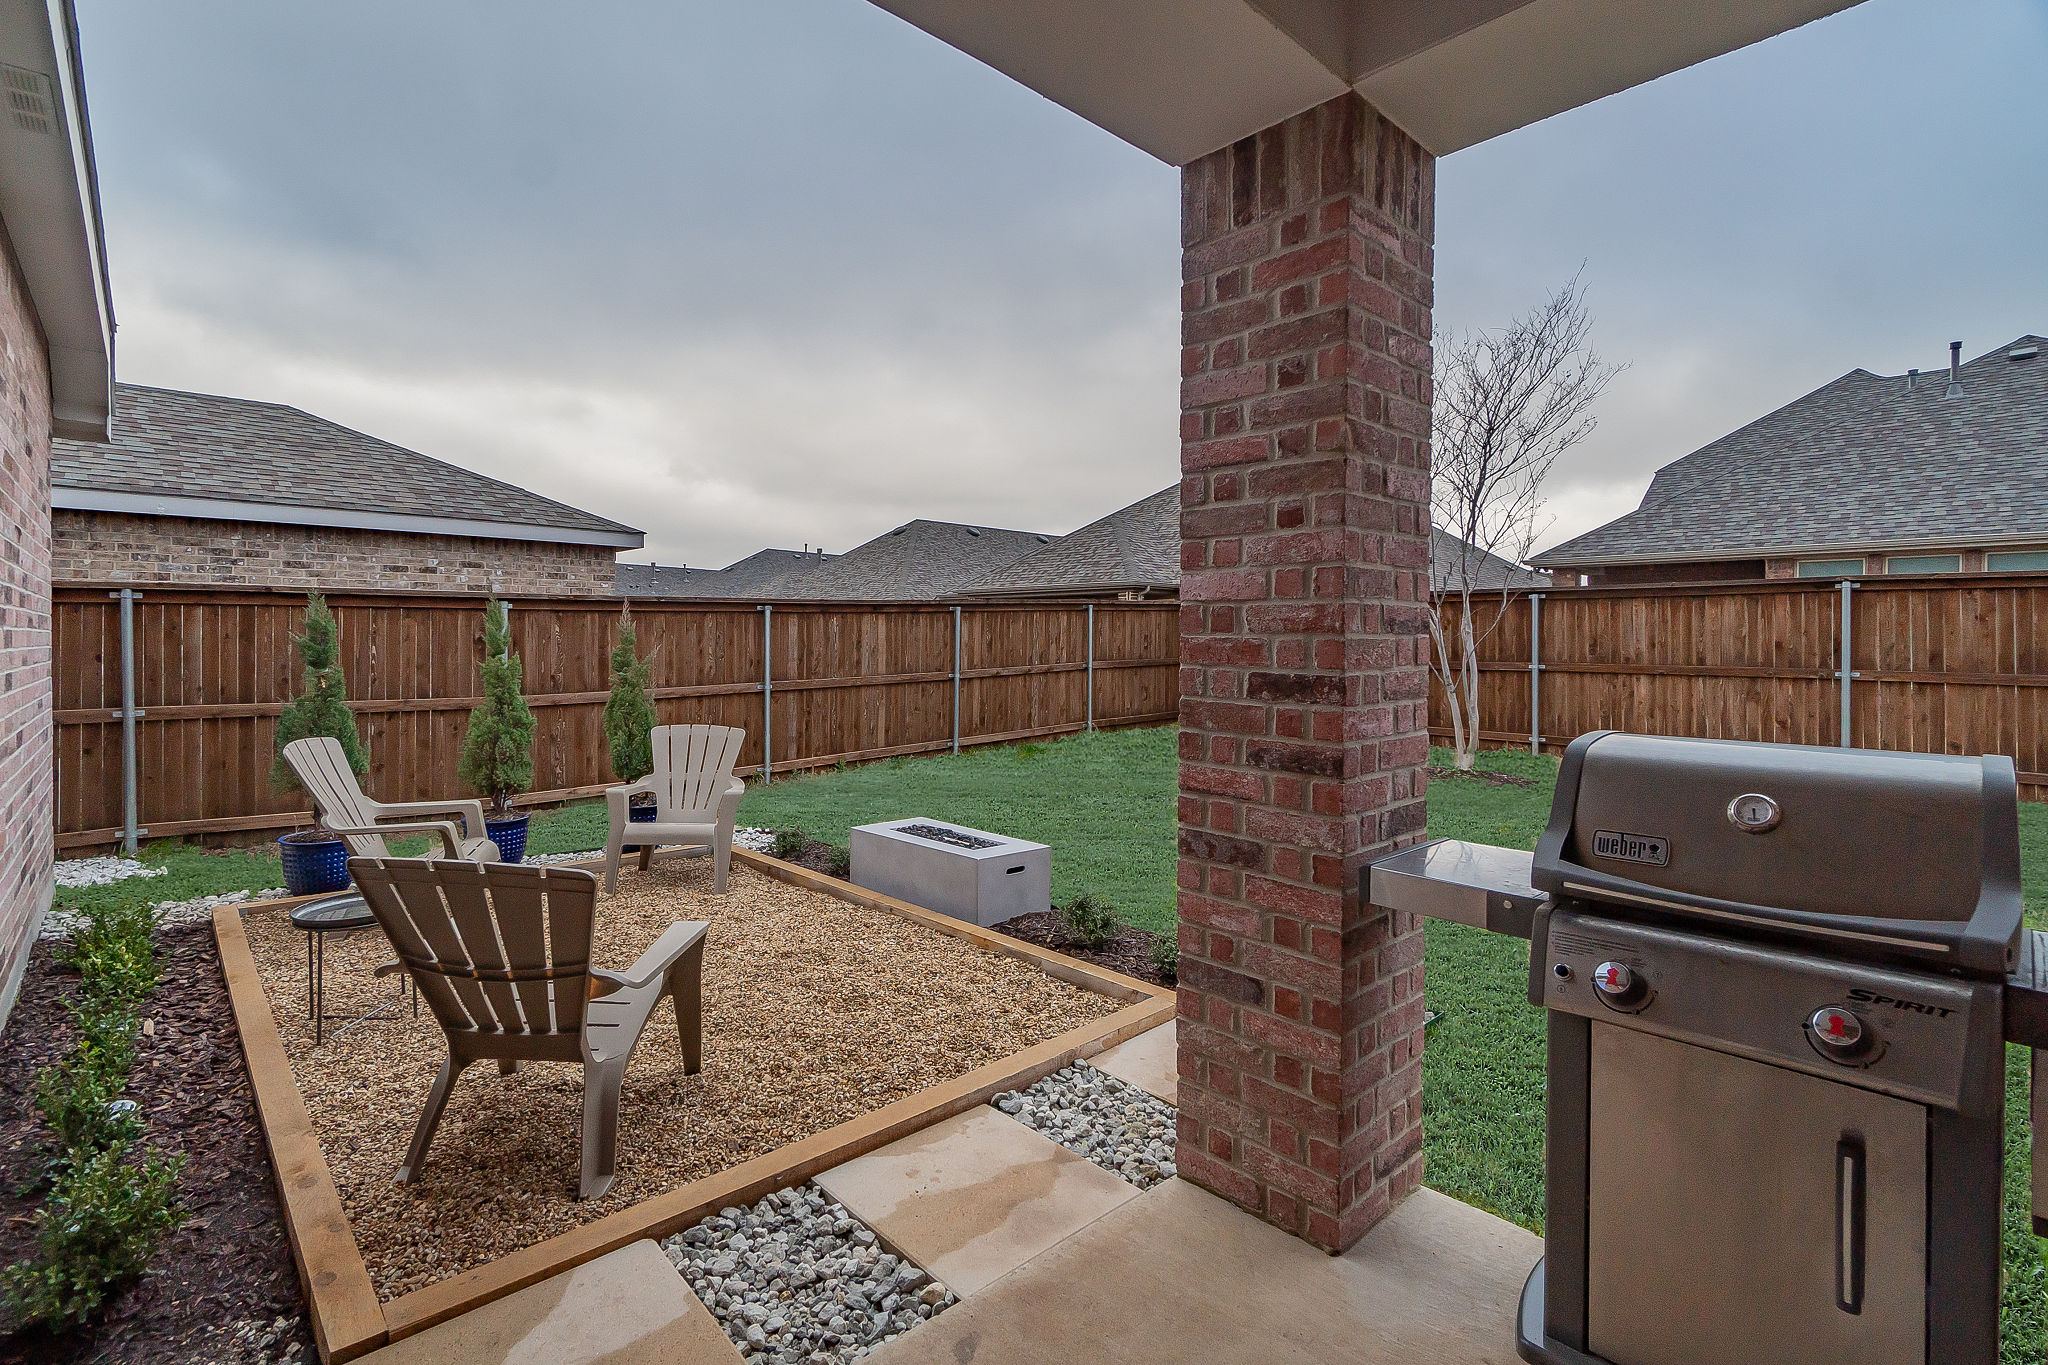 Celina Real Estate Photographer, Photography, 601 Smokebrush Street Celina Texas 75009 (109).jpg